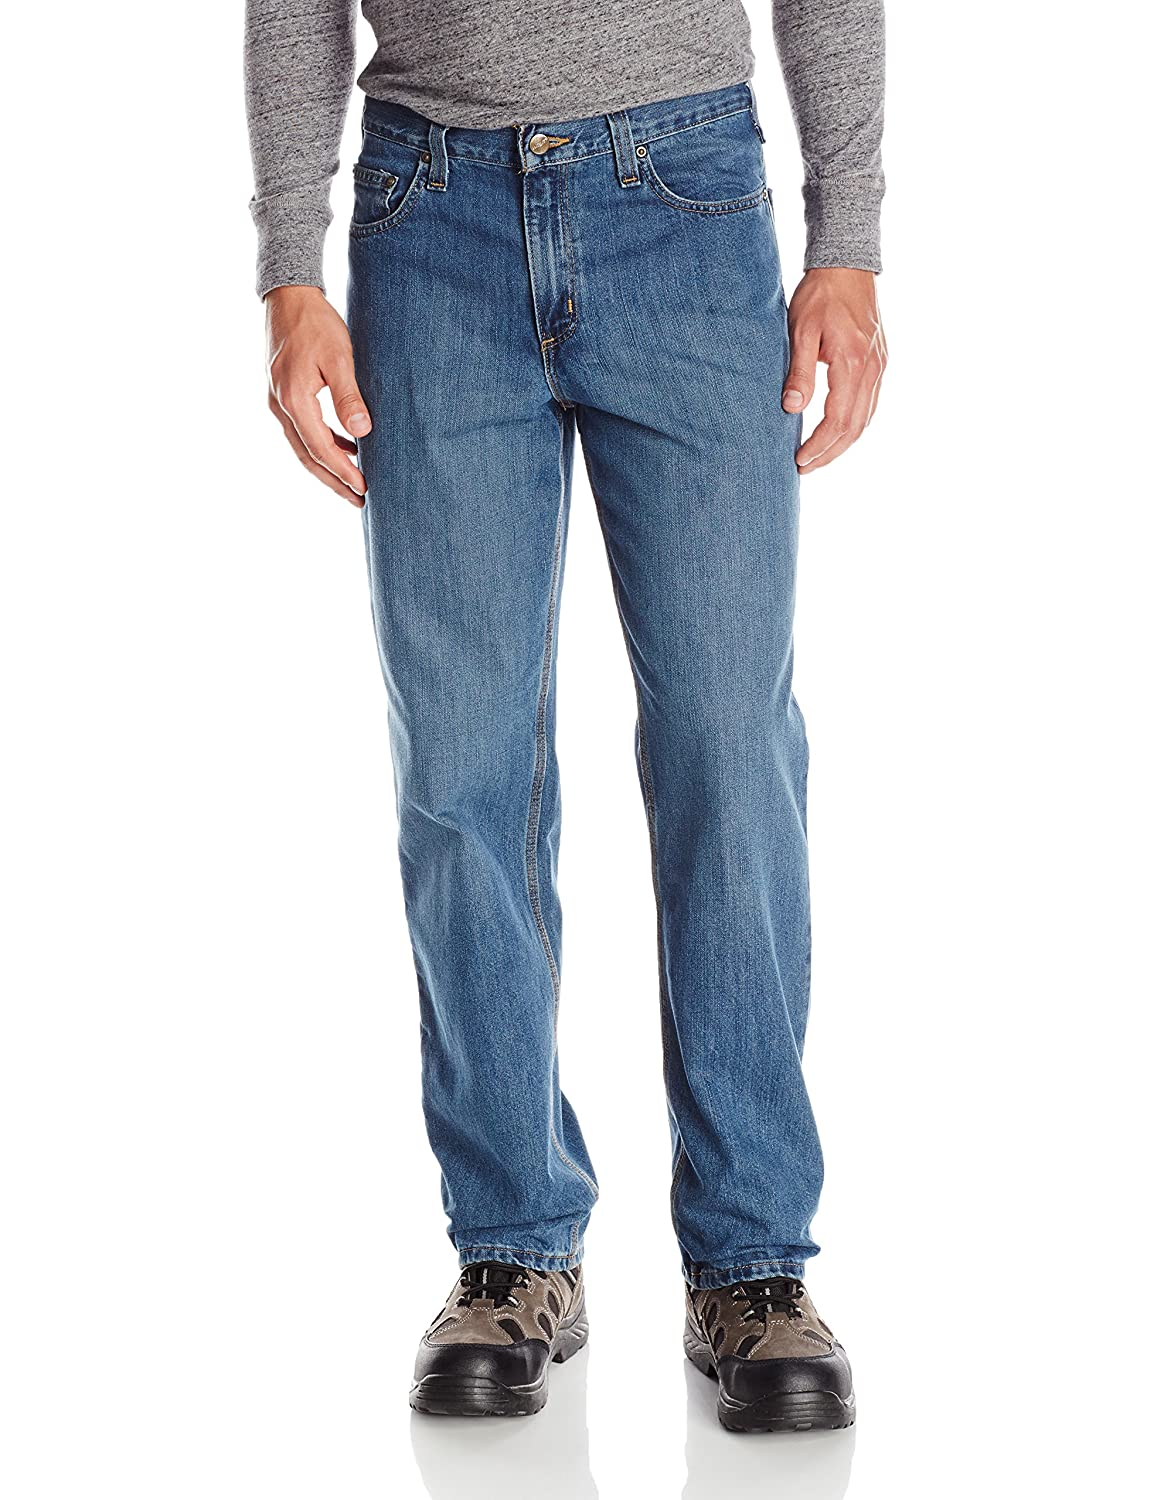 Carhartt Mens Relaxed Fit Holter Jean